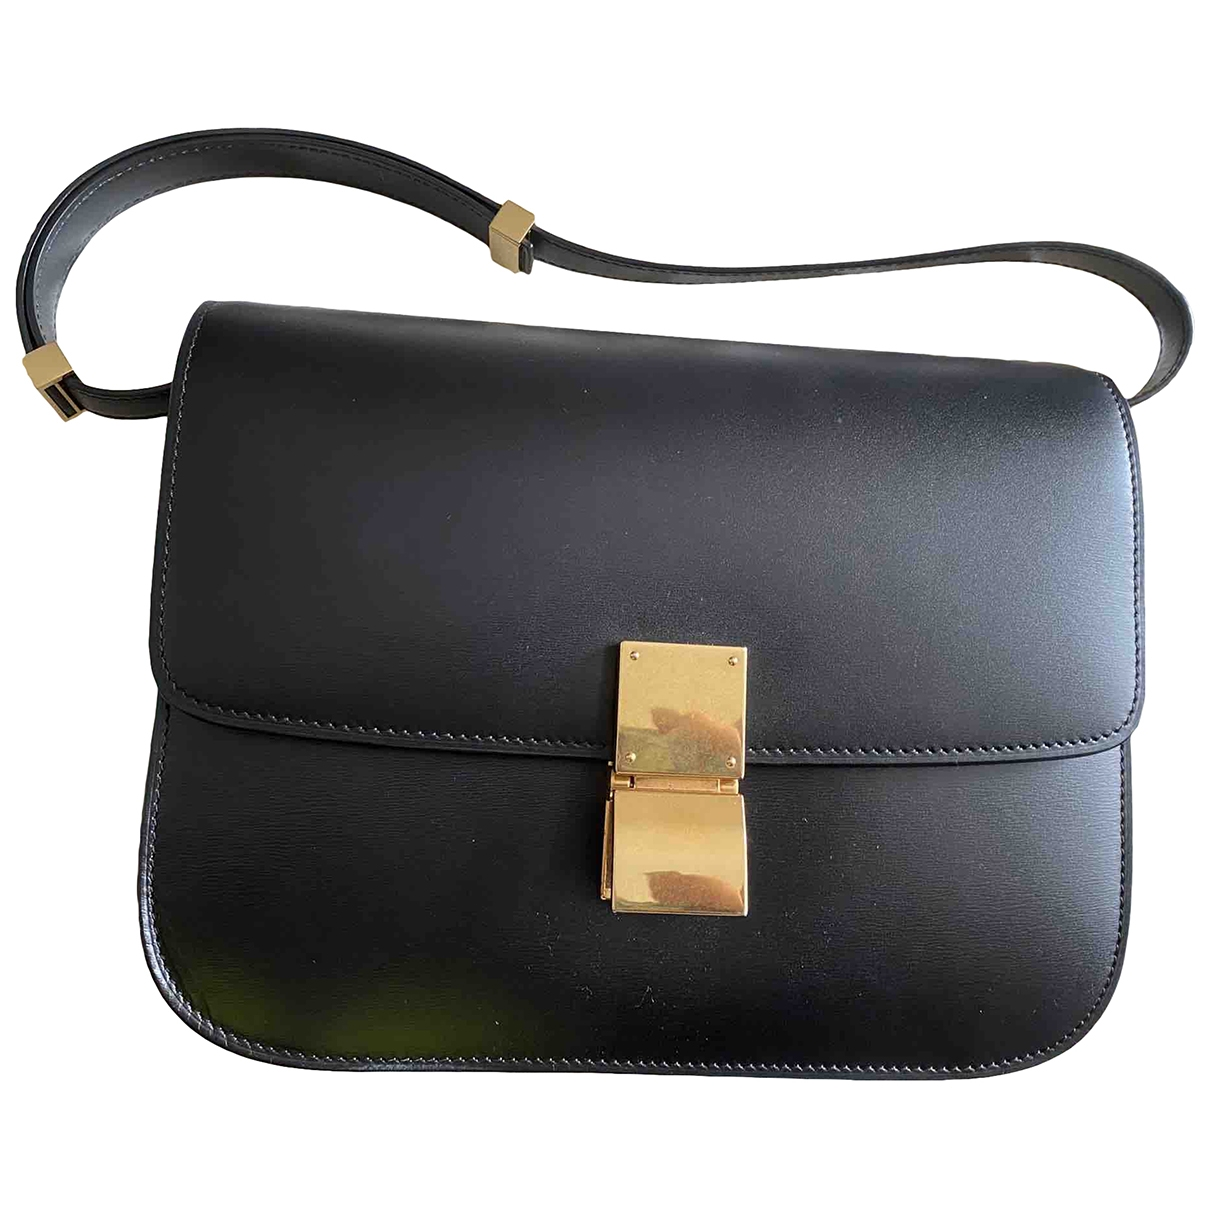 Celine Classic Black Leather handbag for Women \N